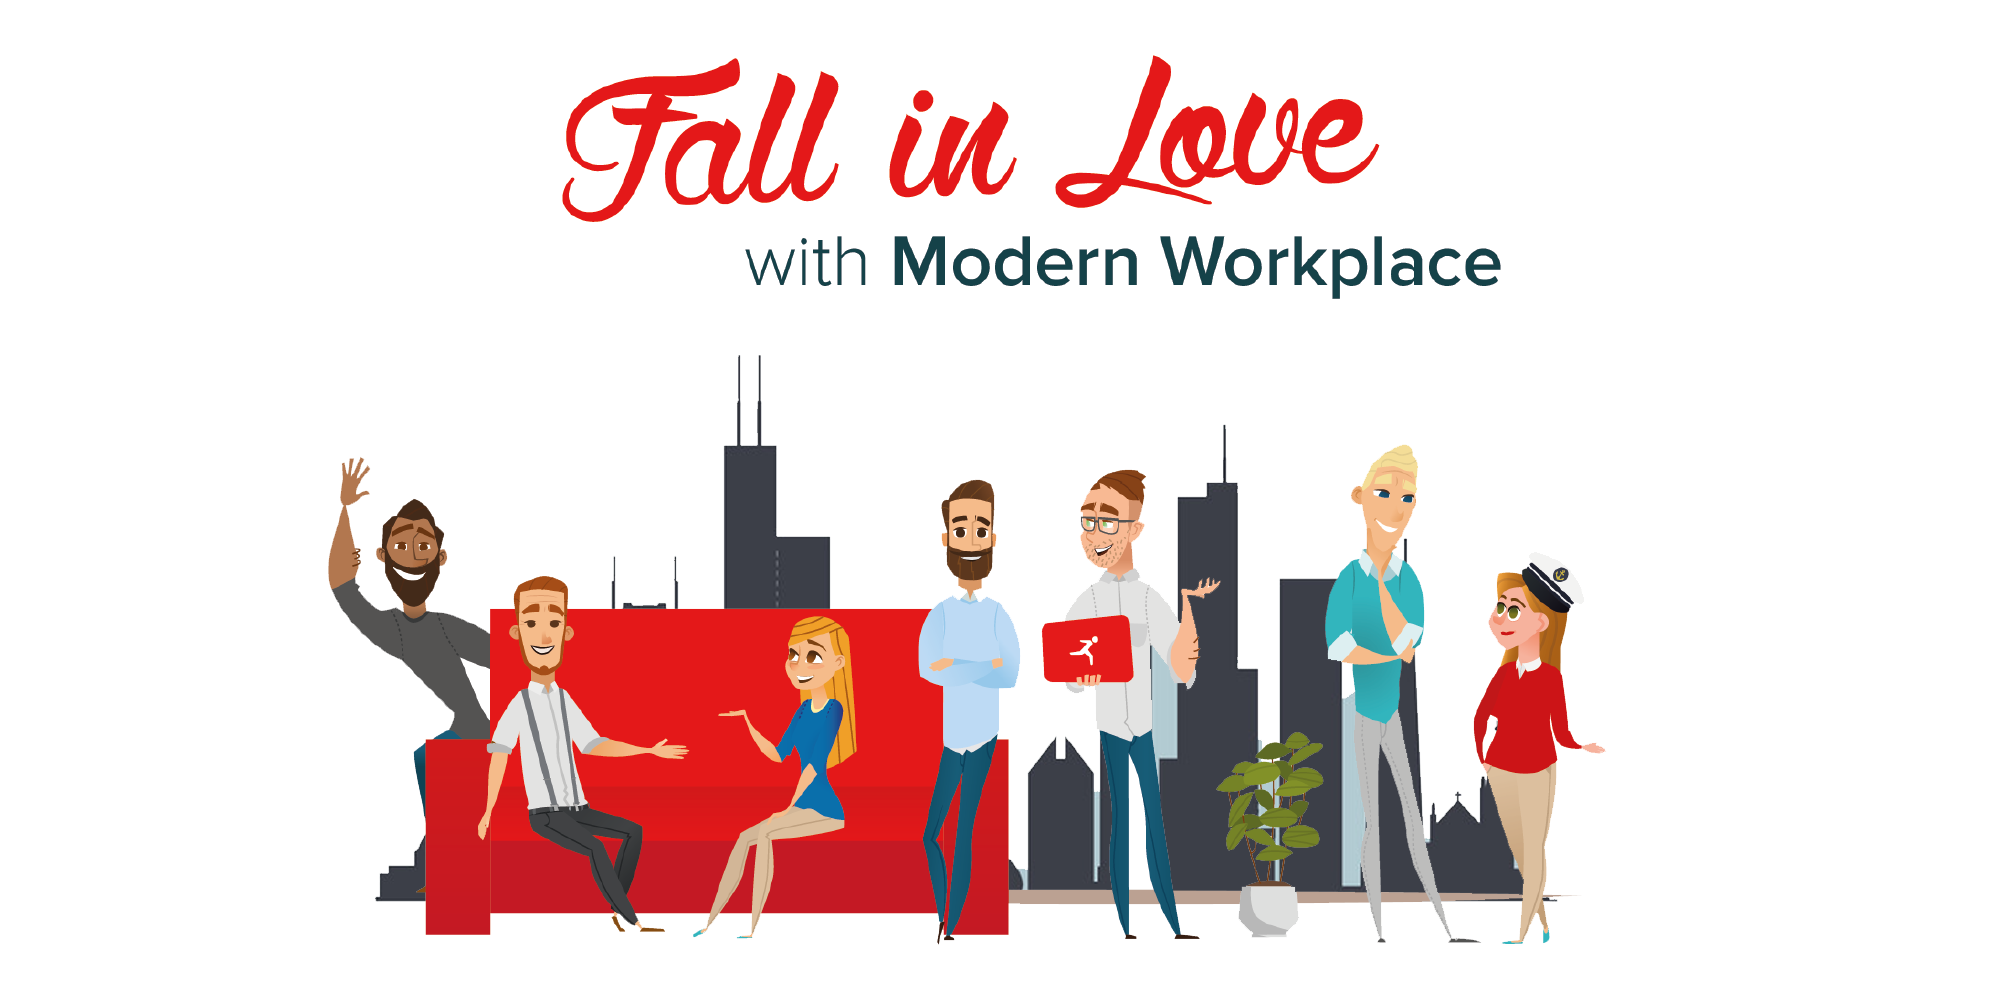 Fall in love with the modern workplace - Office 365